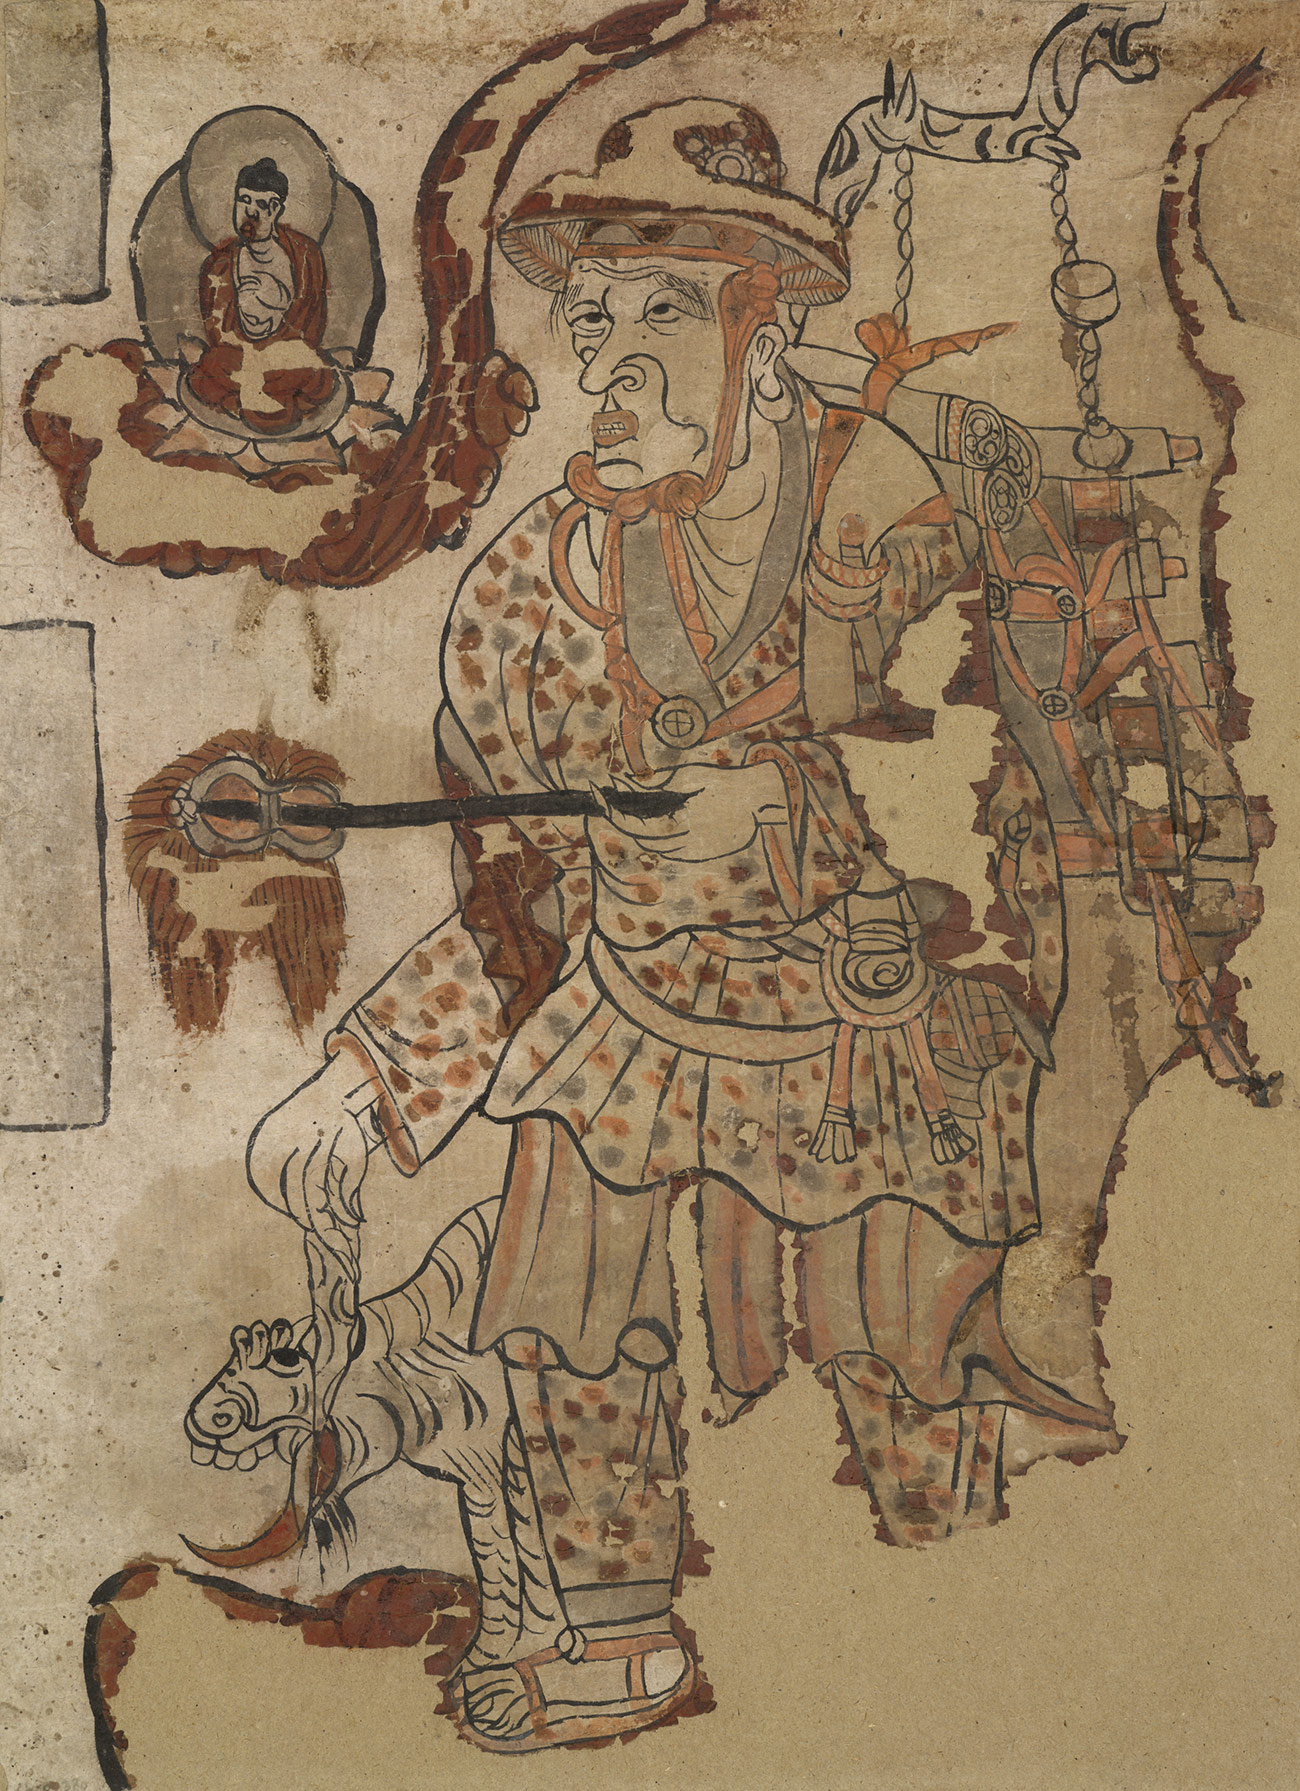 Portrait of a traveling monk found in the Mogao Grottoes